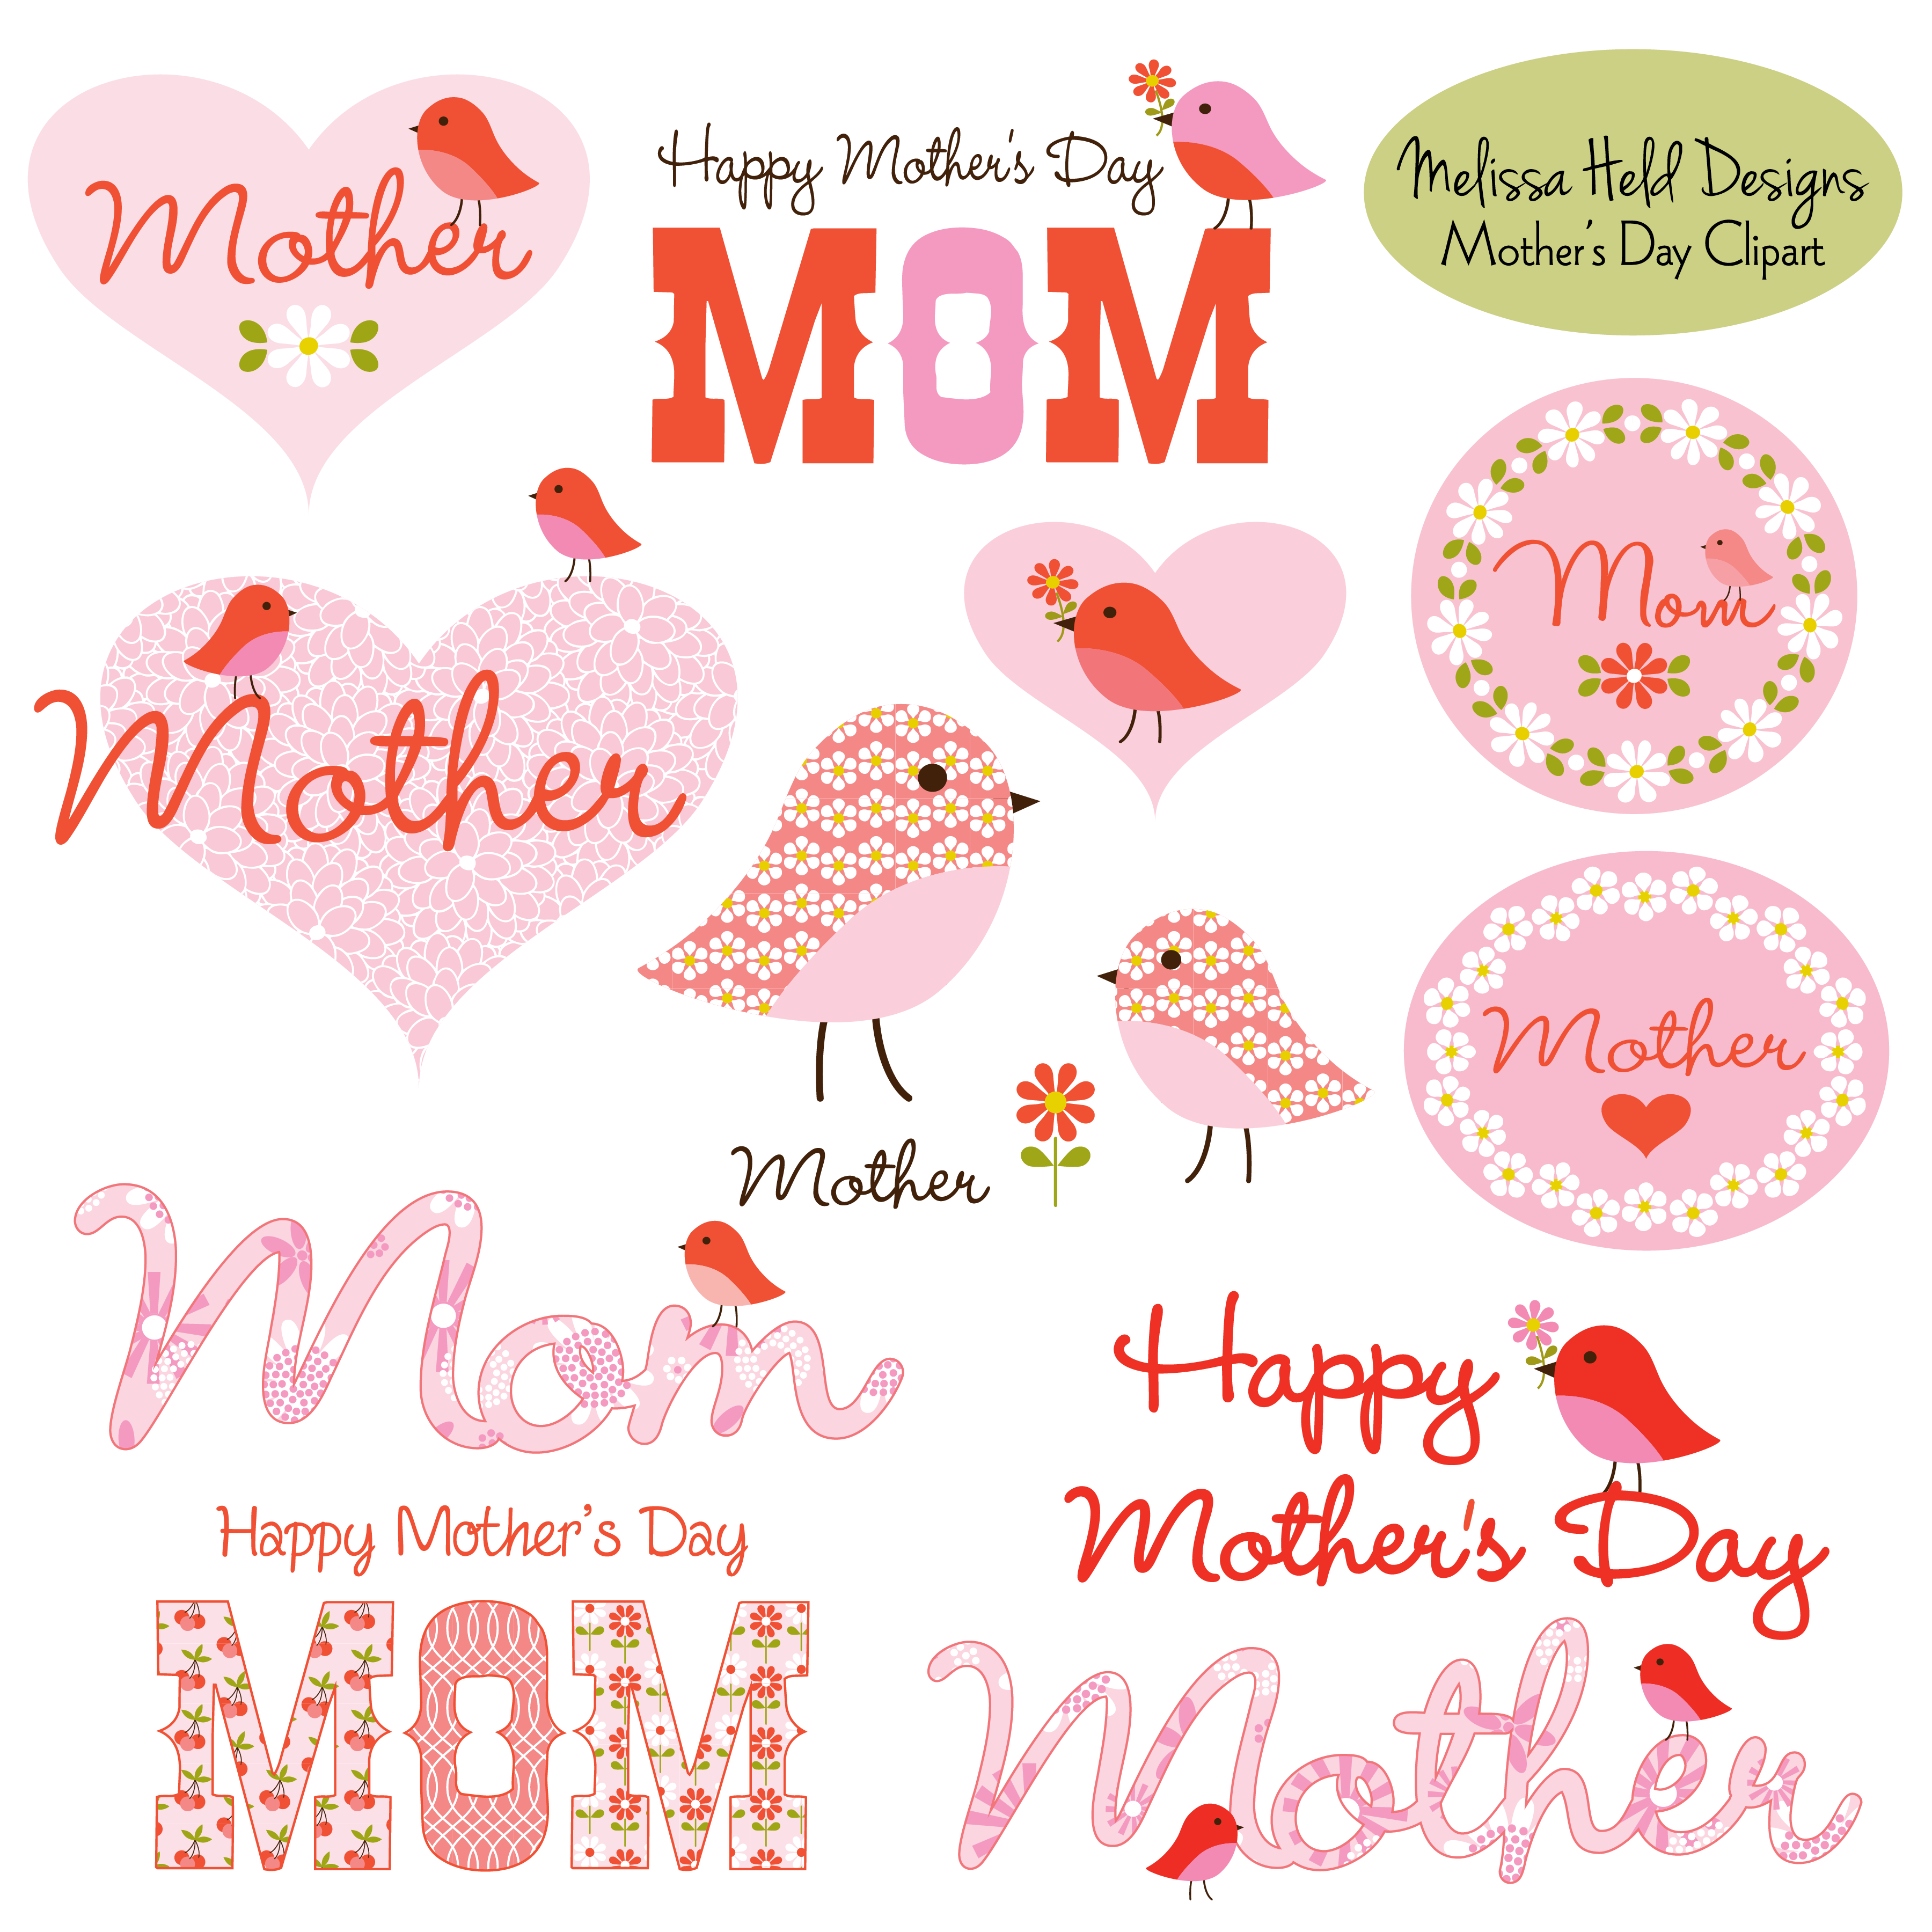 Mother's Day Clipart With Cute Birds.